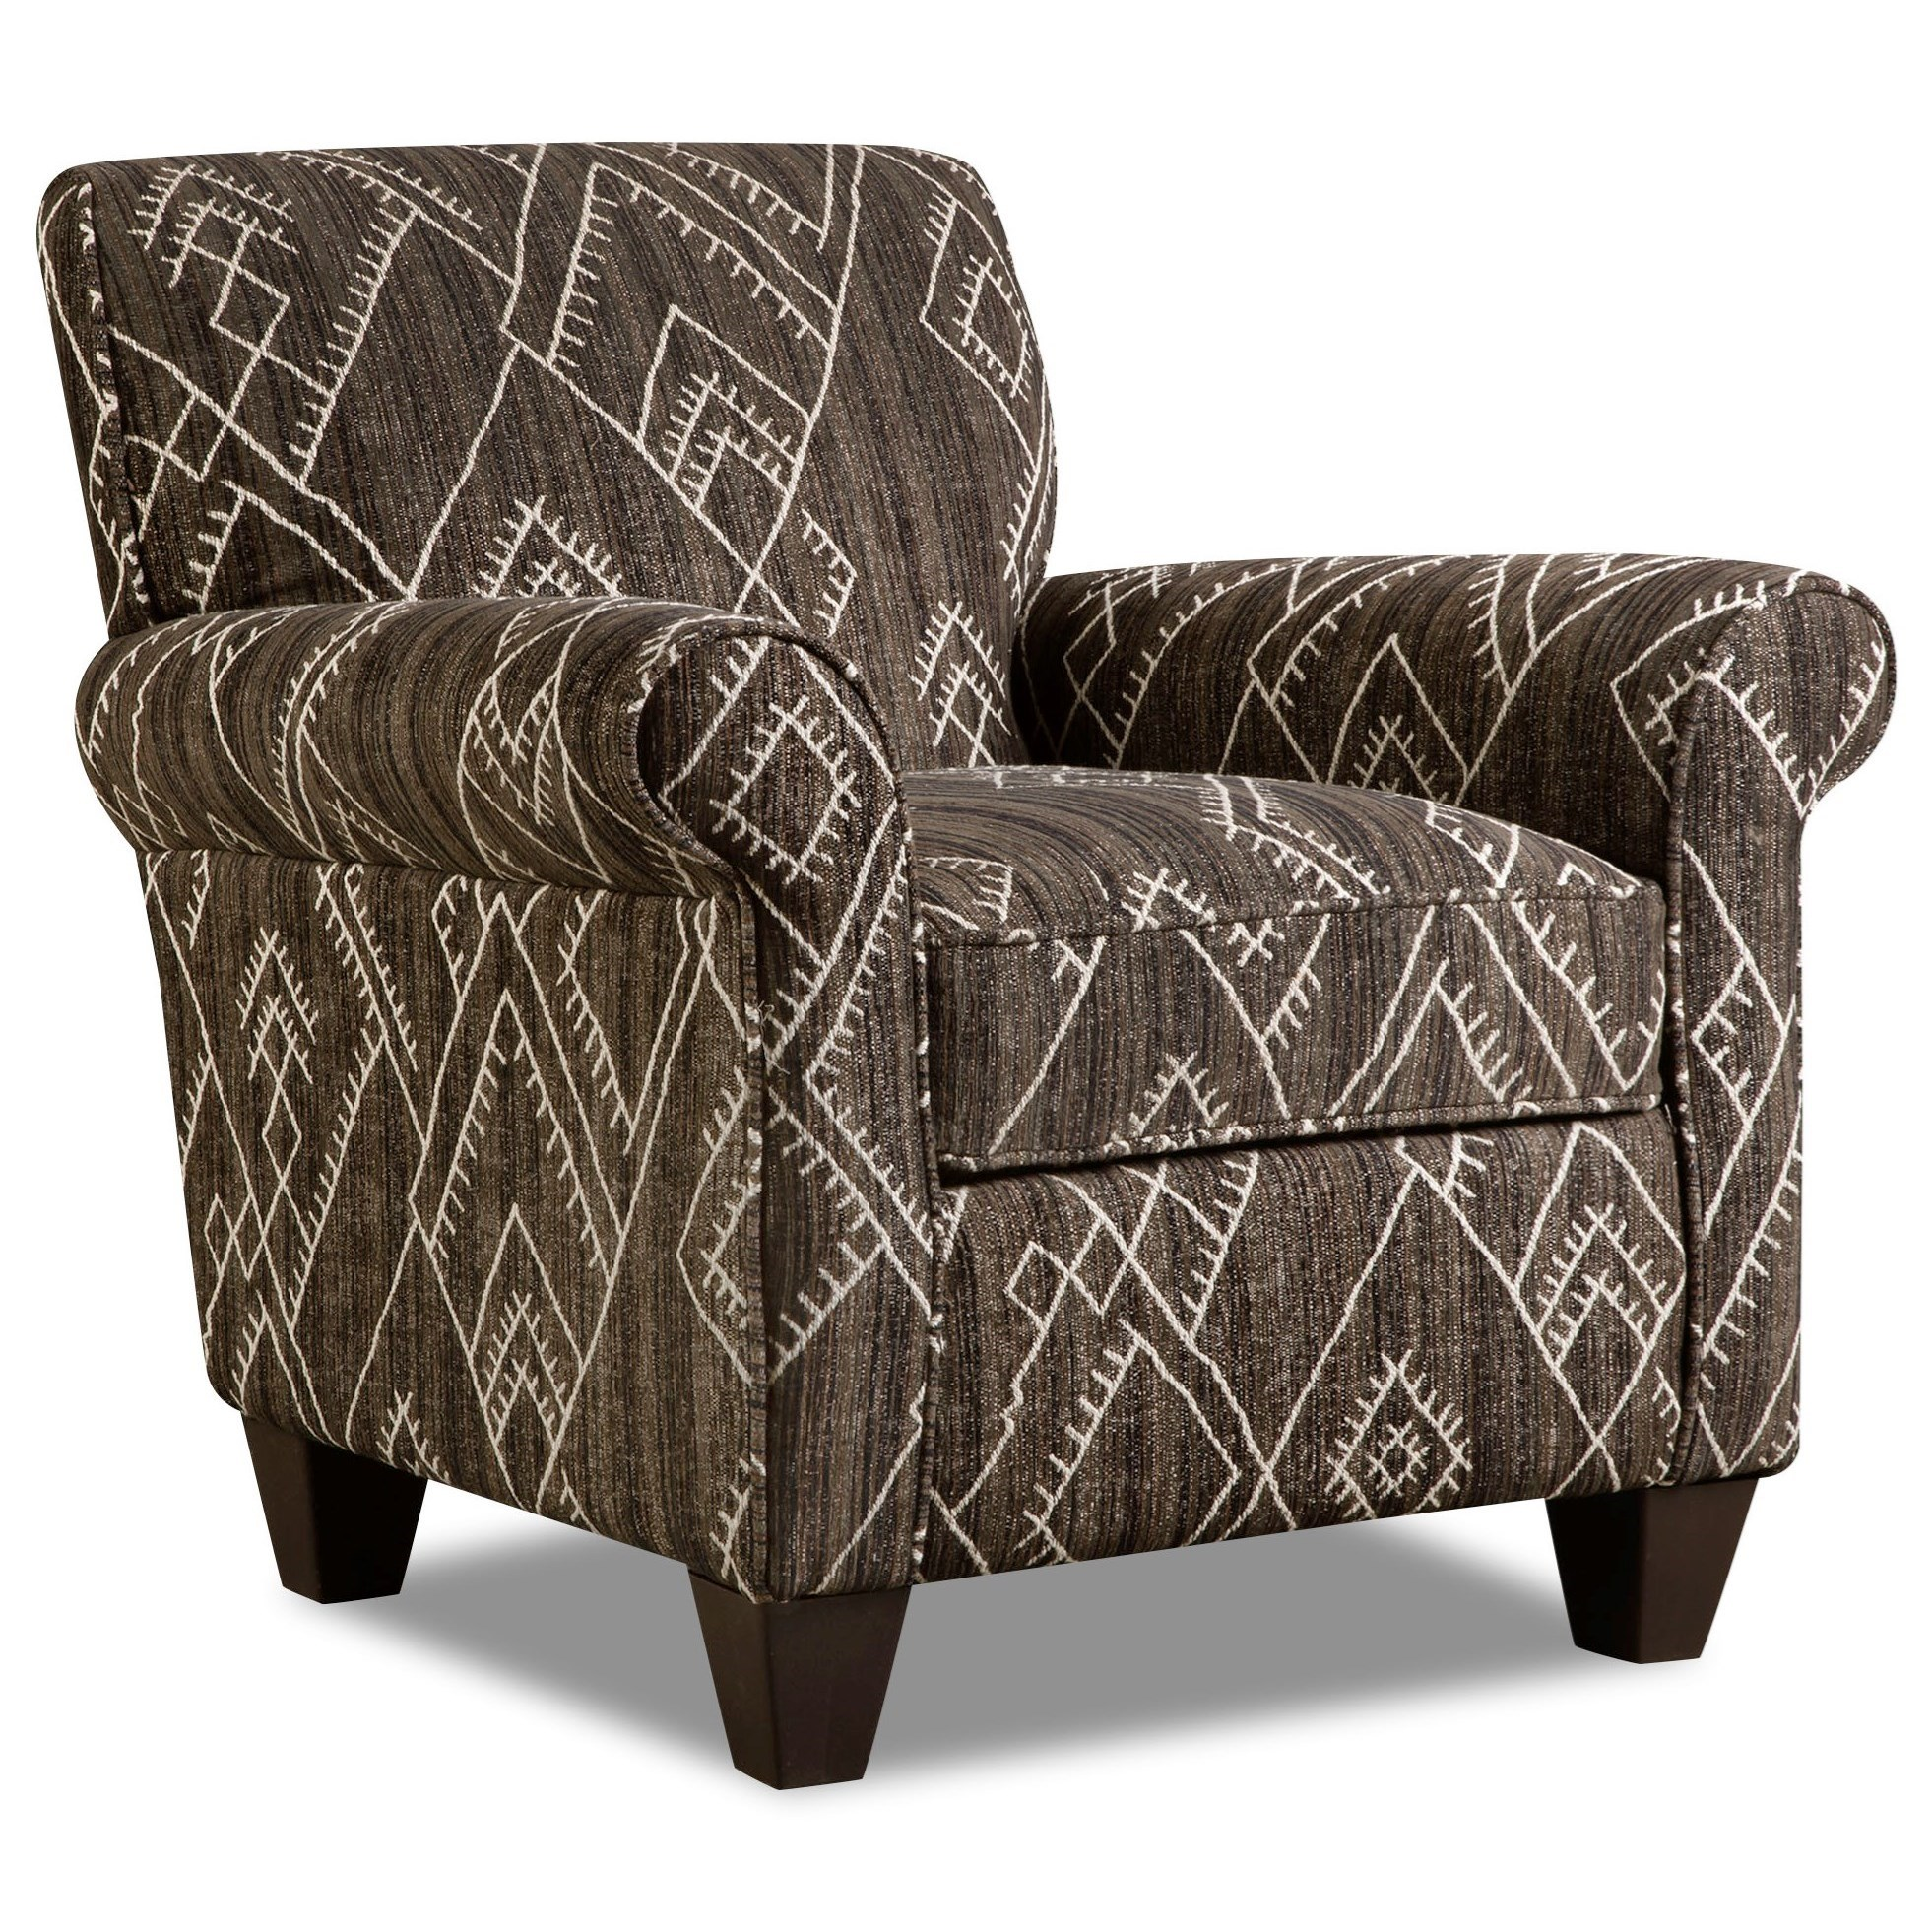 29D0 Accent Chair by Corinthian at Story & Lee Furniture